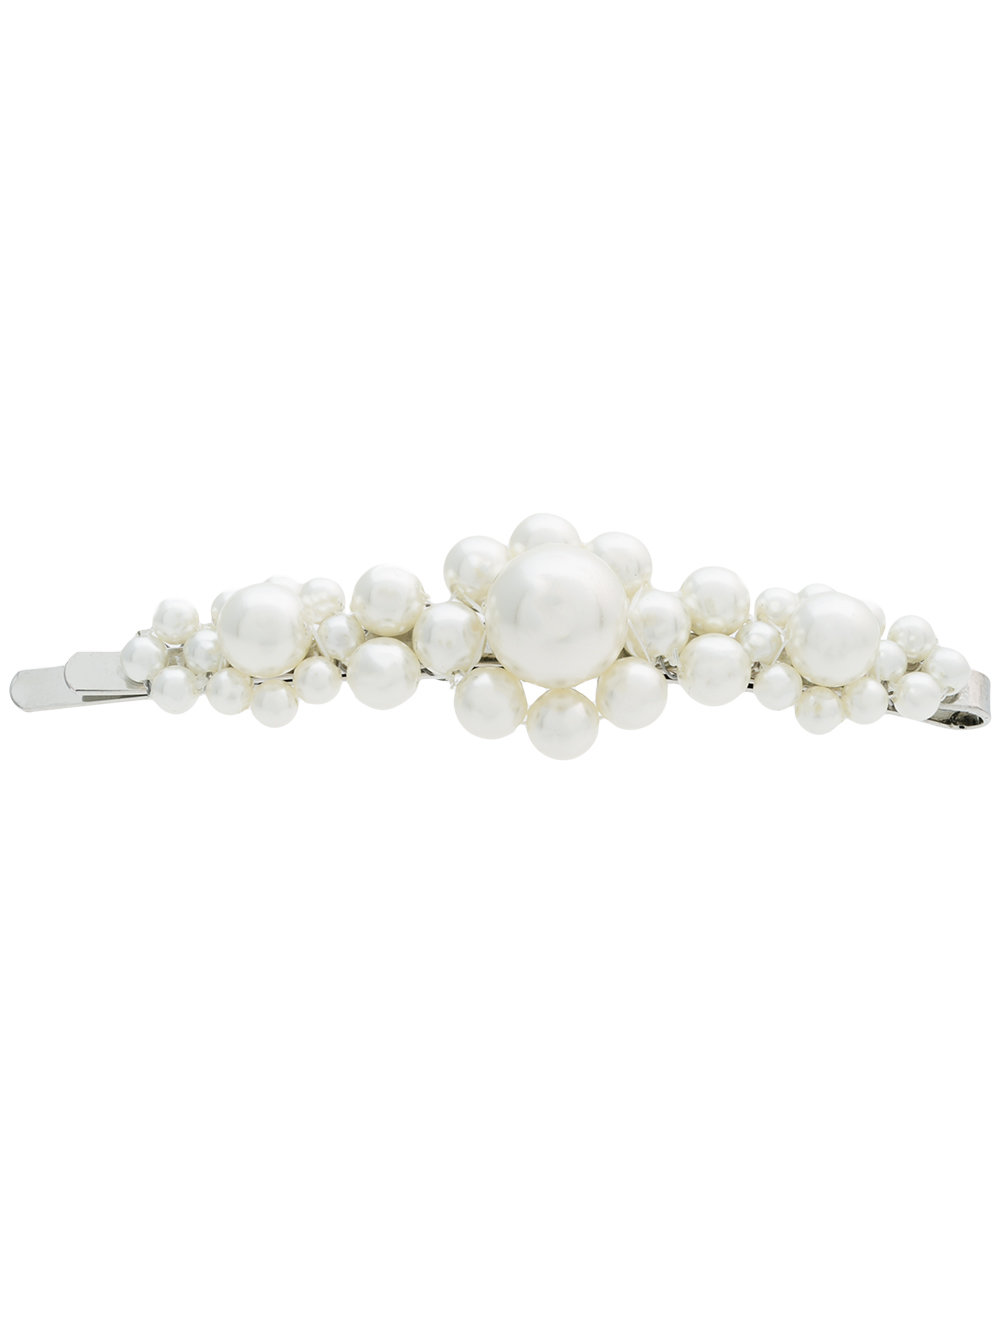 Simone Rocha - This little flower pearl barrette is the best answer to humidity and post-beach hair — I plan on wearing it poolside to tame my wavy hair, or at night with a dress.